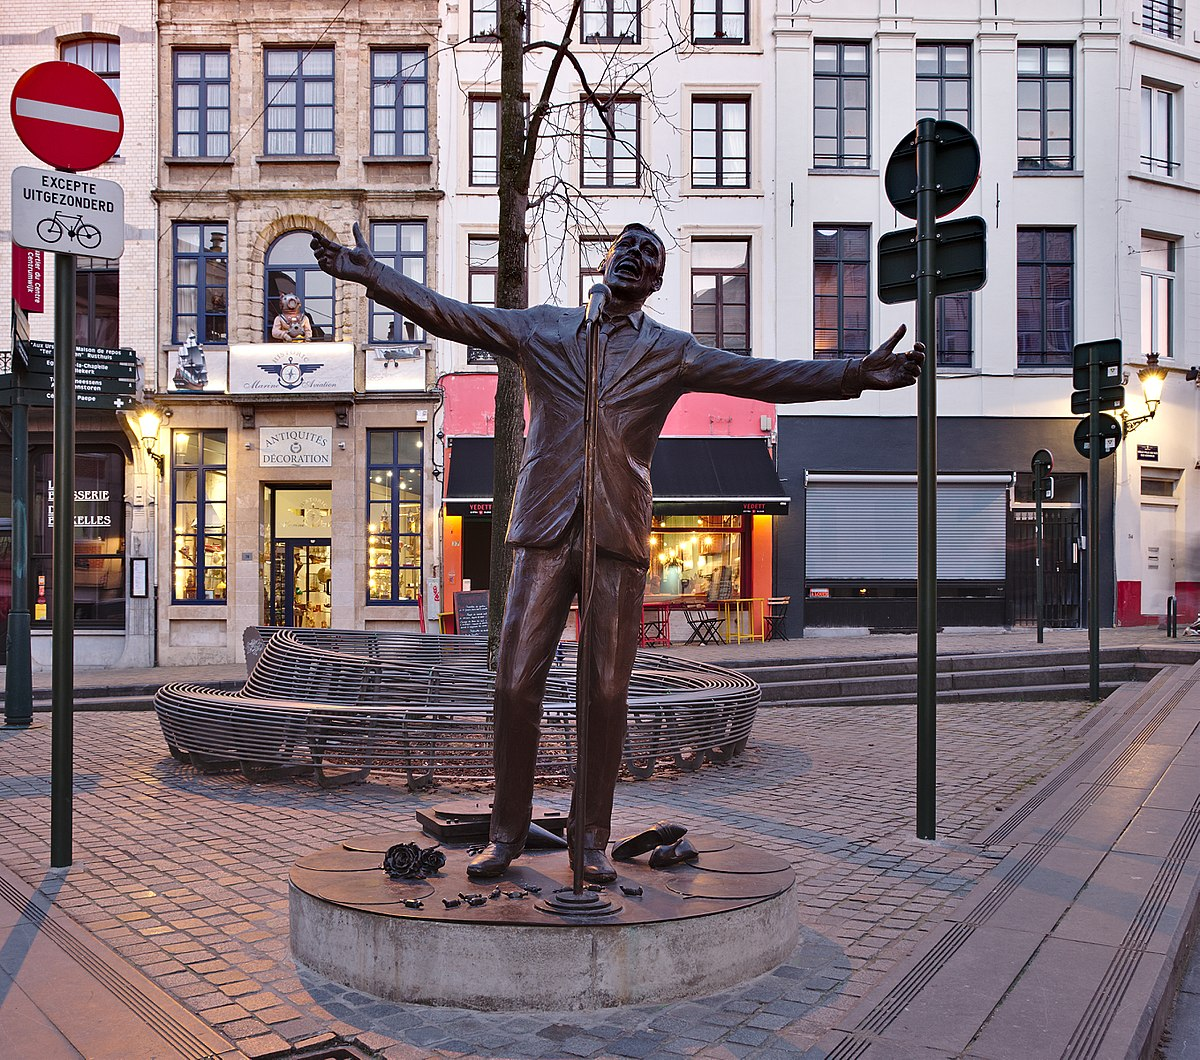 Jacques Brel memorial bronze statue by Tom Frantzen on place de la Vieille Halle aux Blés during the evening civil twilight in Brussels, Belgium (DSCF4319-crop).jpg